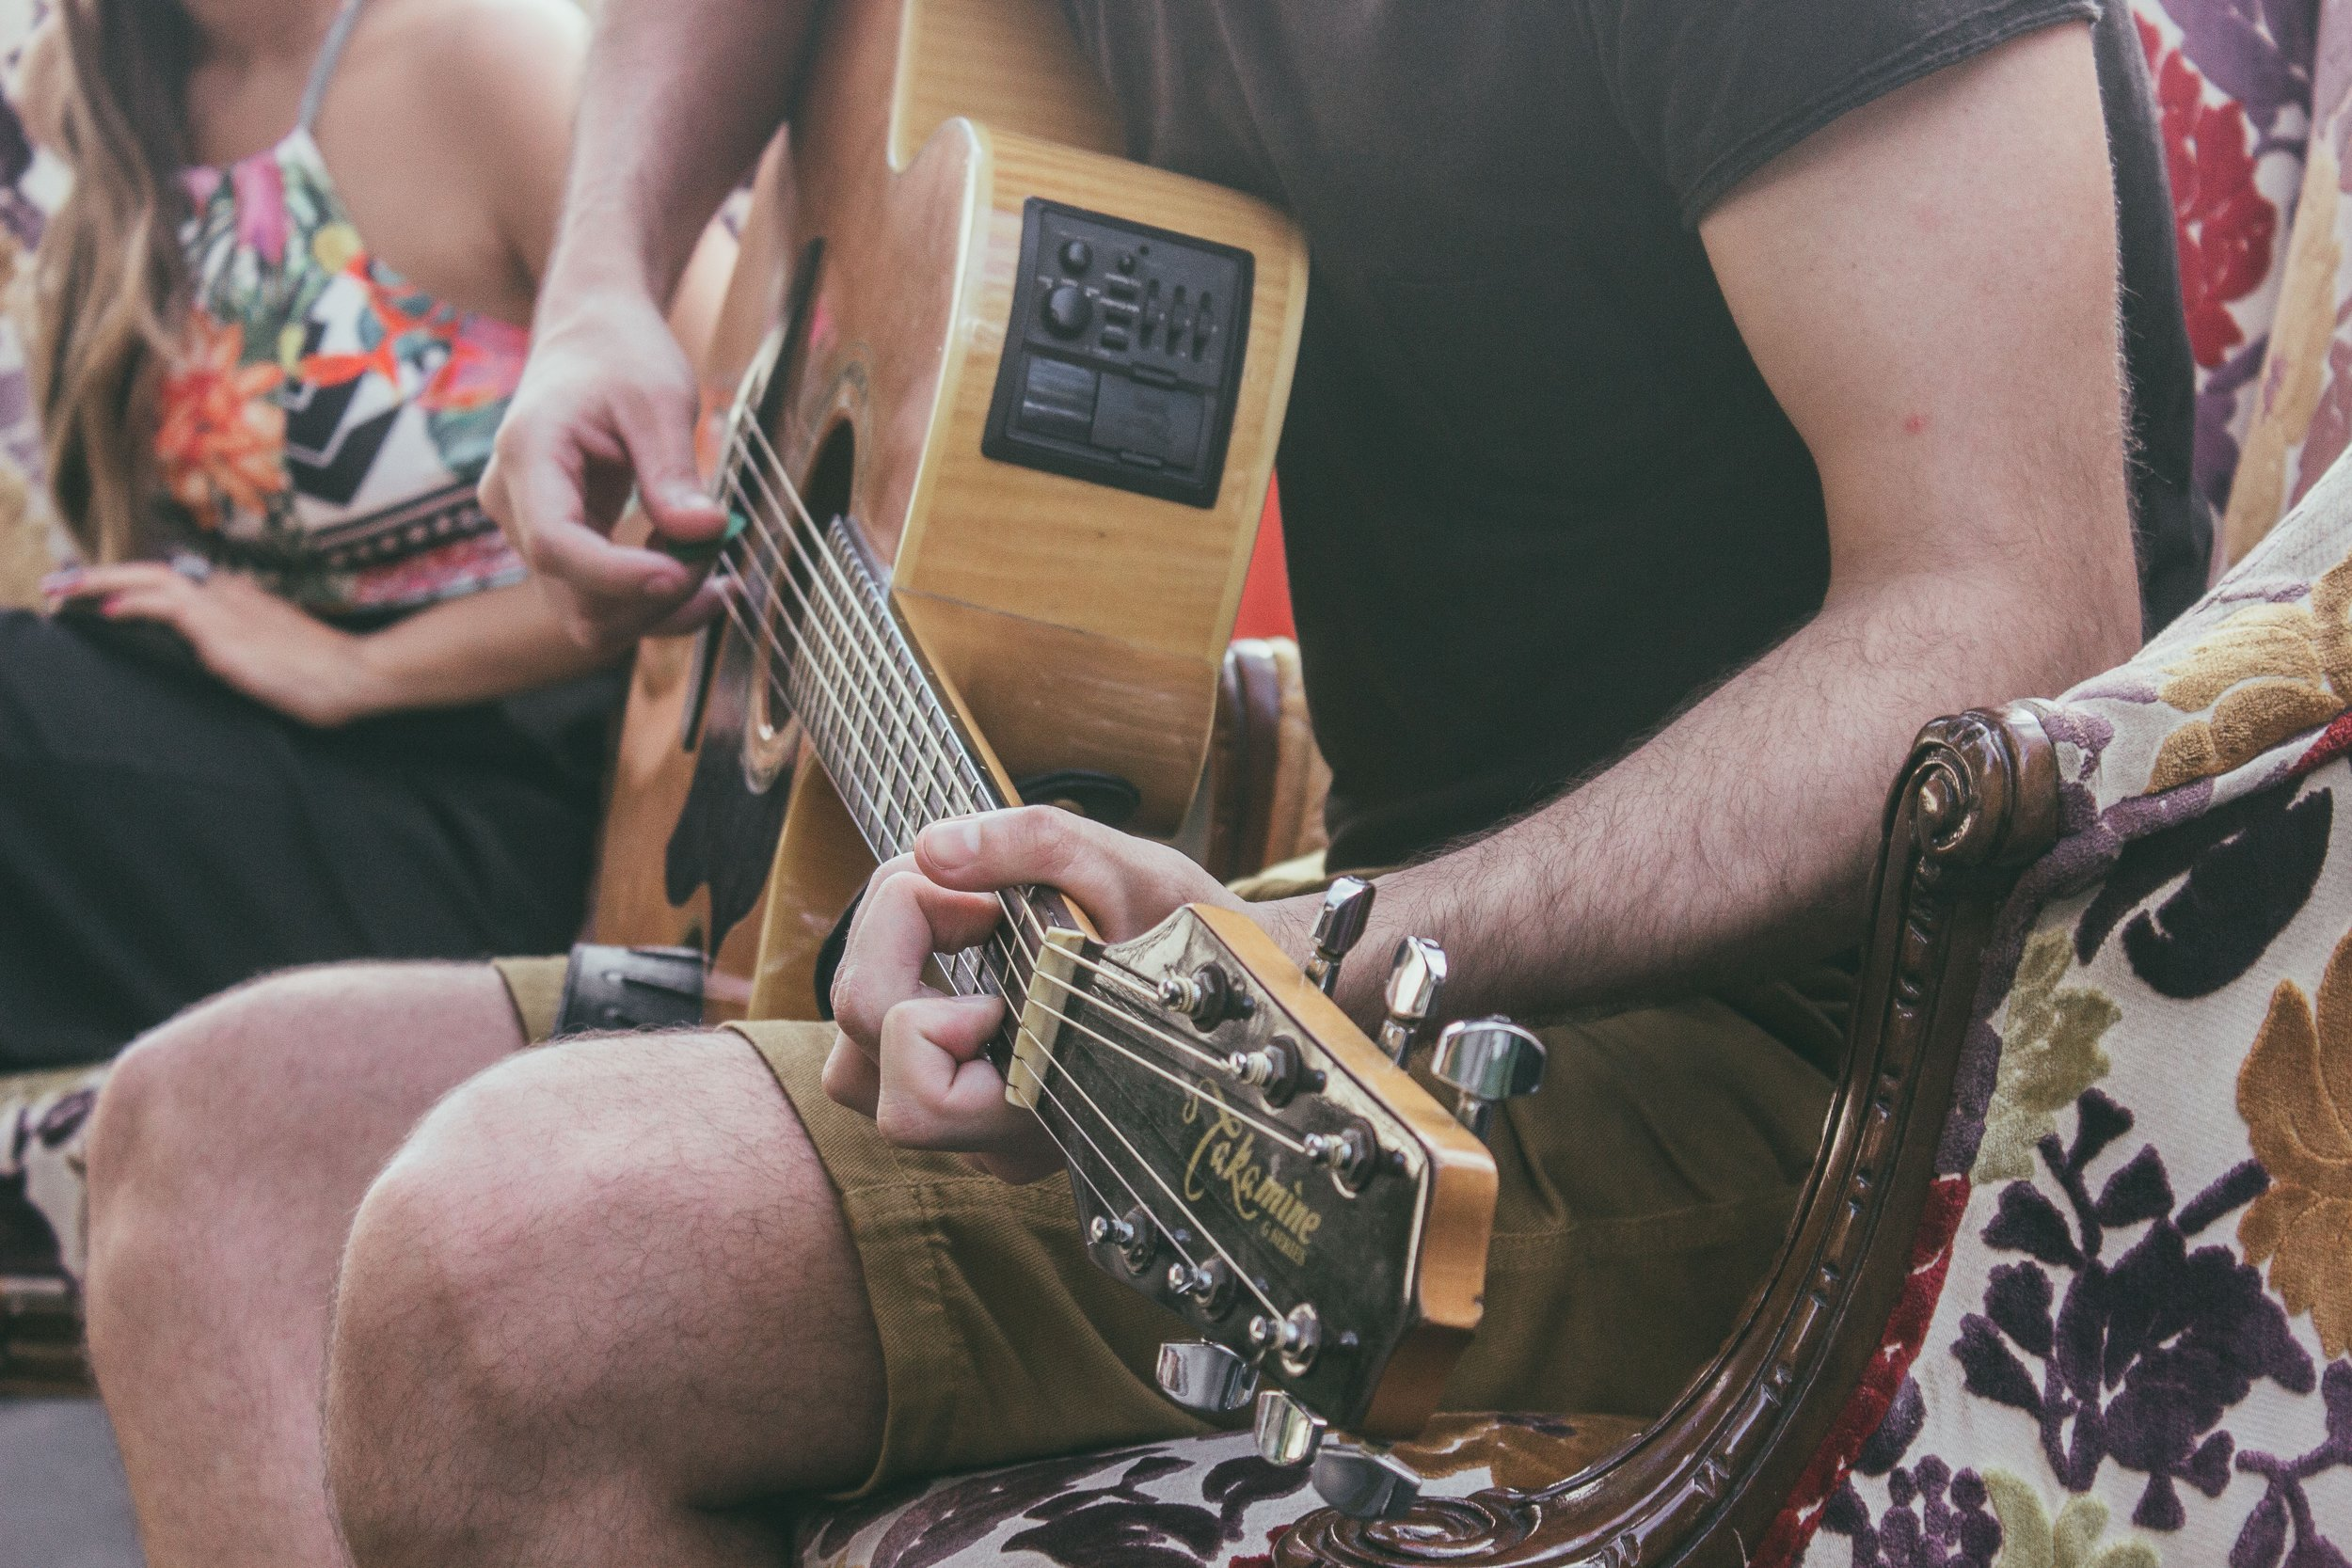 Learn the Essentials - Guitar Anatomy and TuningKey and Chord TheoryStrumming, Rhythm, and PracticingG, C, and E Shape ChordsThe Capo